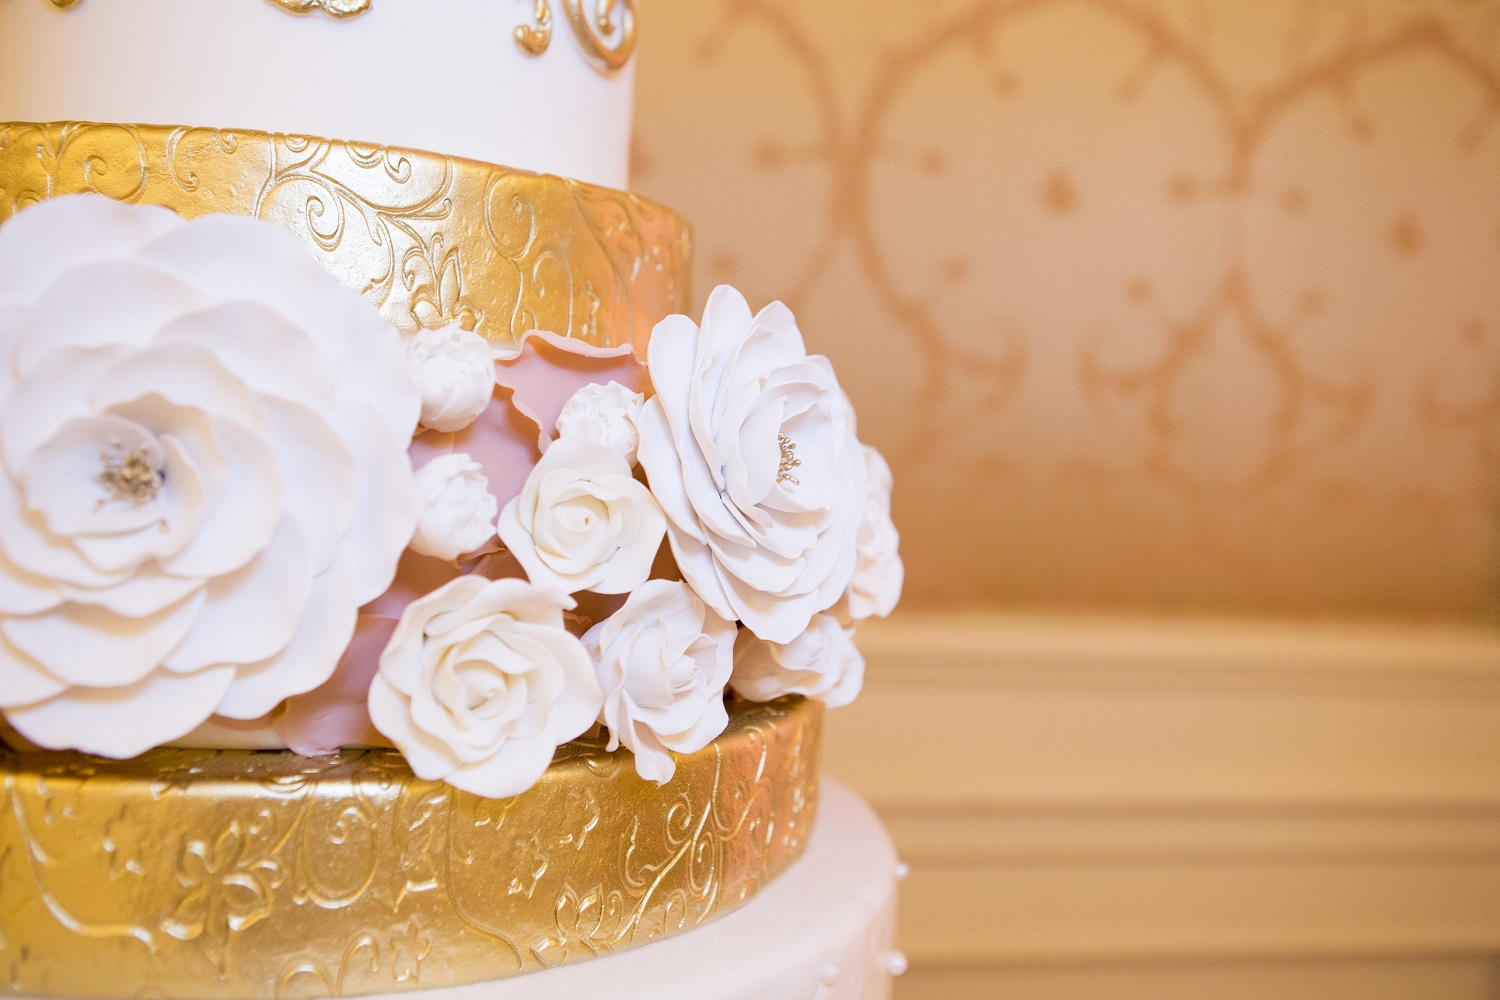 bac-details-pink-gold-cake-for-stephanie-at-westgate-sweet-cheeks-baking-co-dan-rice-photo